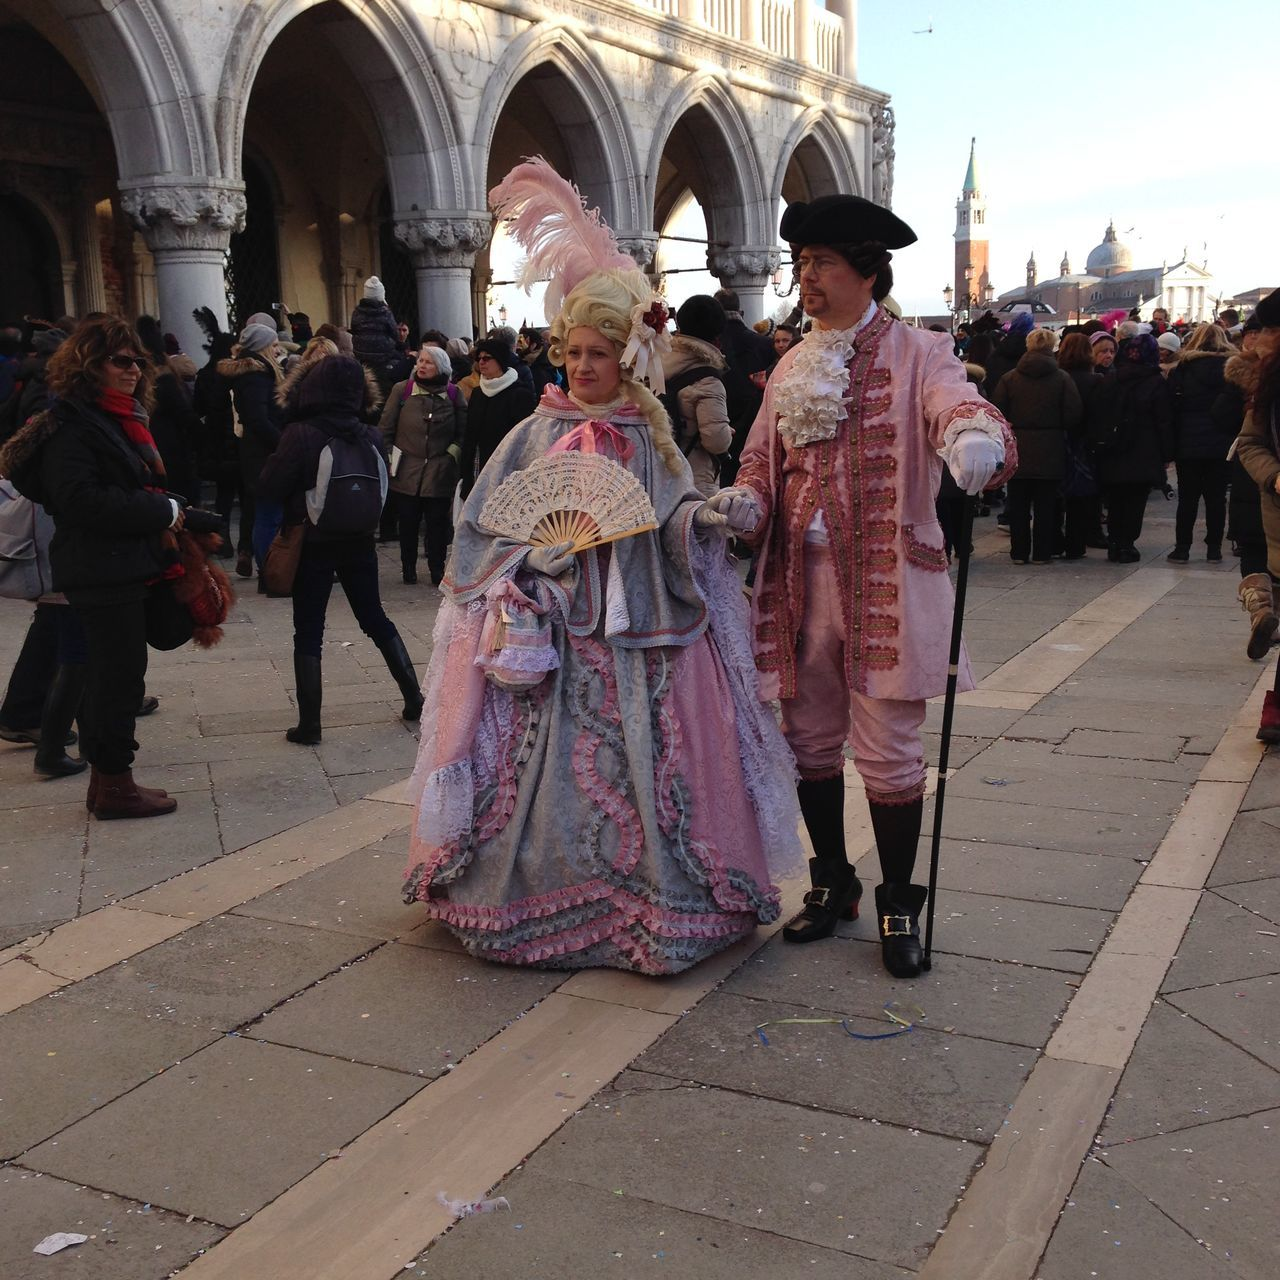 Adult Adults Only Carneval Day Full Length Outdoors People Real People Senior Adult Traditional Clothing Venice Carnival Venice, Italy